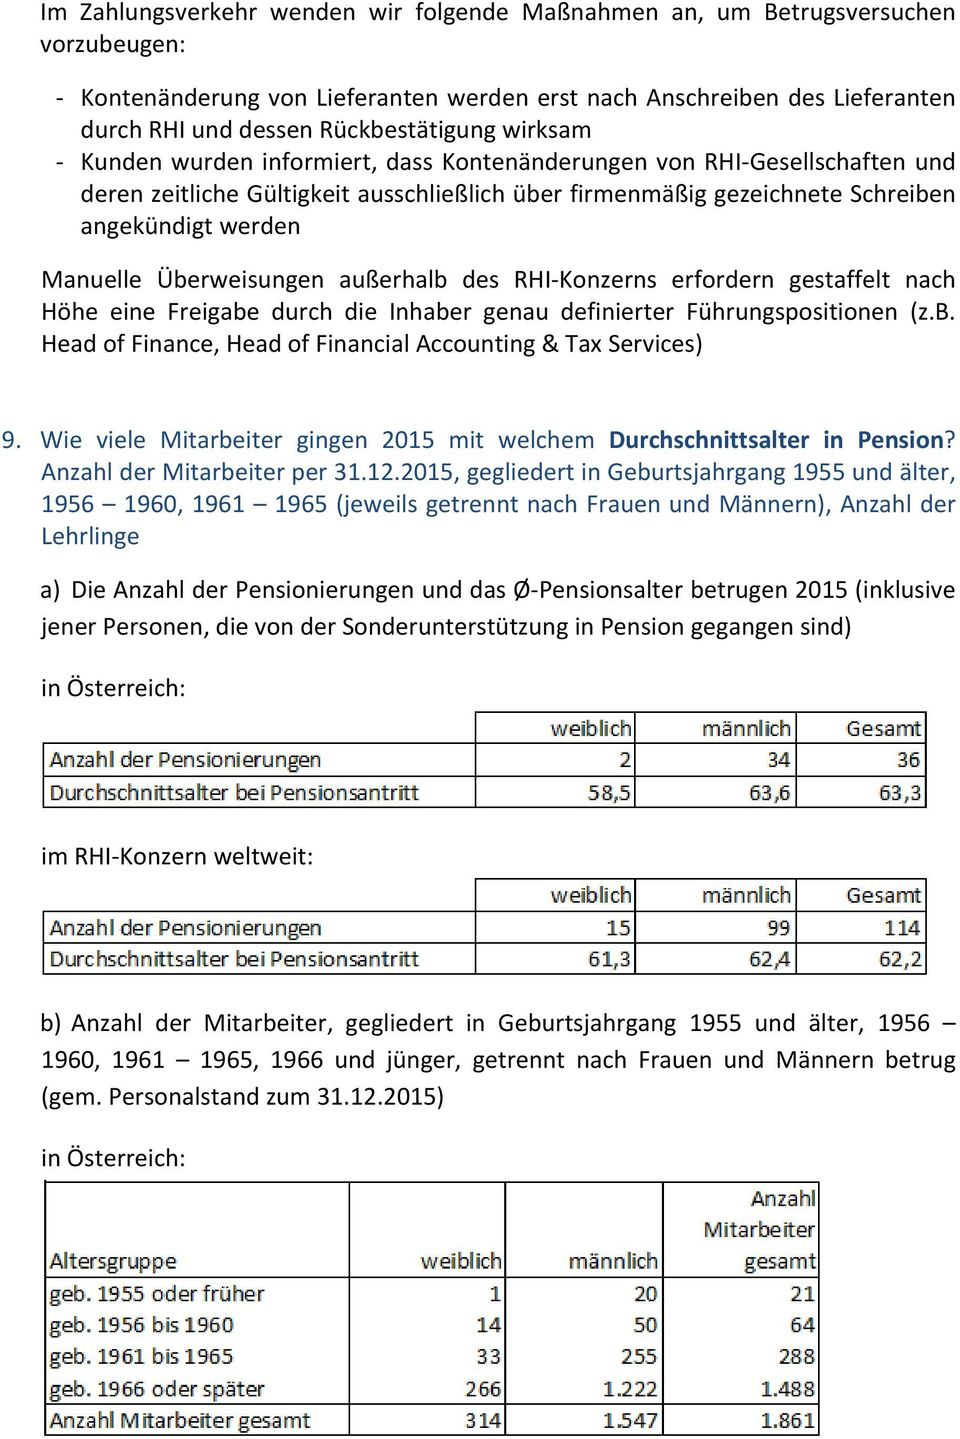 Überweisungen außerhalb des RHI Konzerns erfordern gestaffelt nach Höhe eine Freigabe durch die Inhaber genau definierter Führungspositionen (z.b. Head of Finance, Head of Financial Accounting & Tax Services) 9.